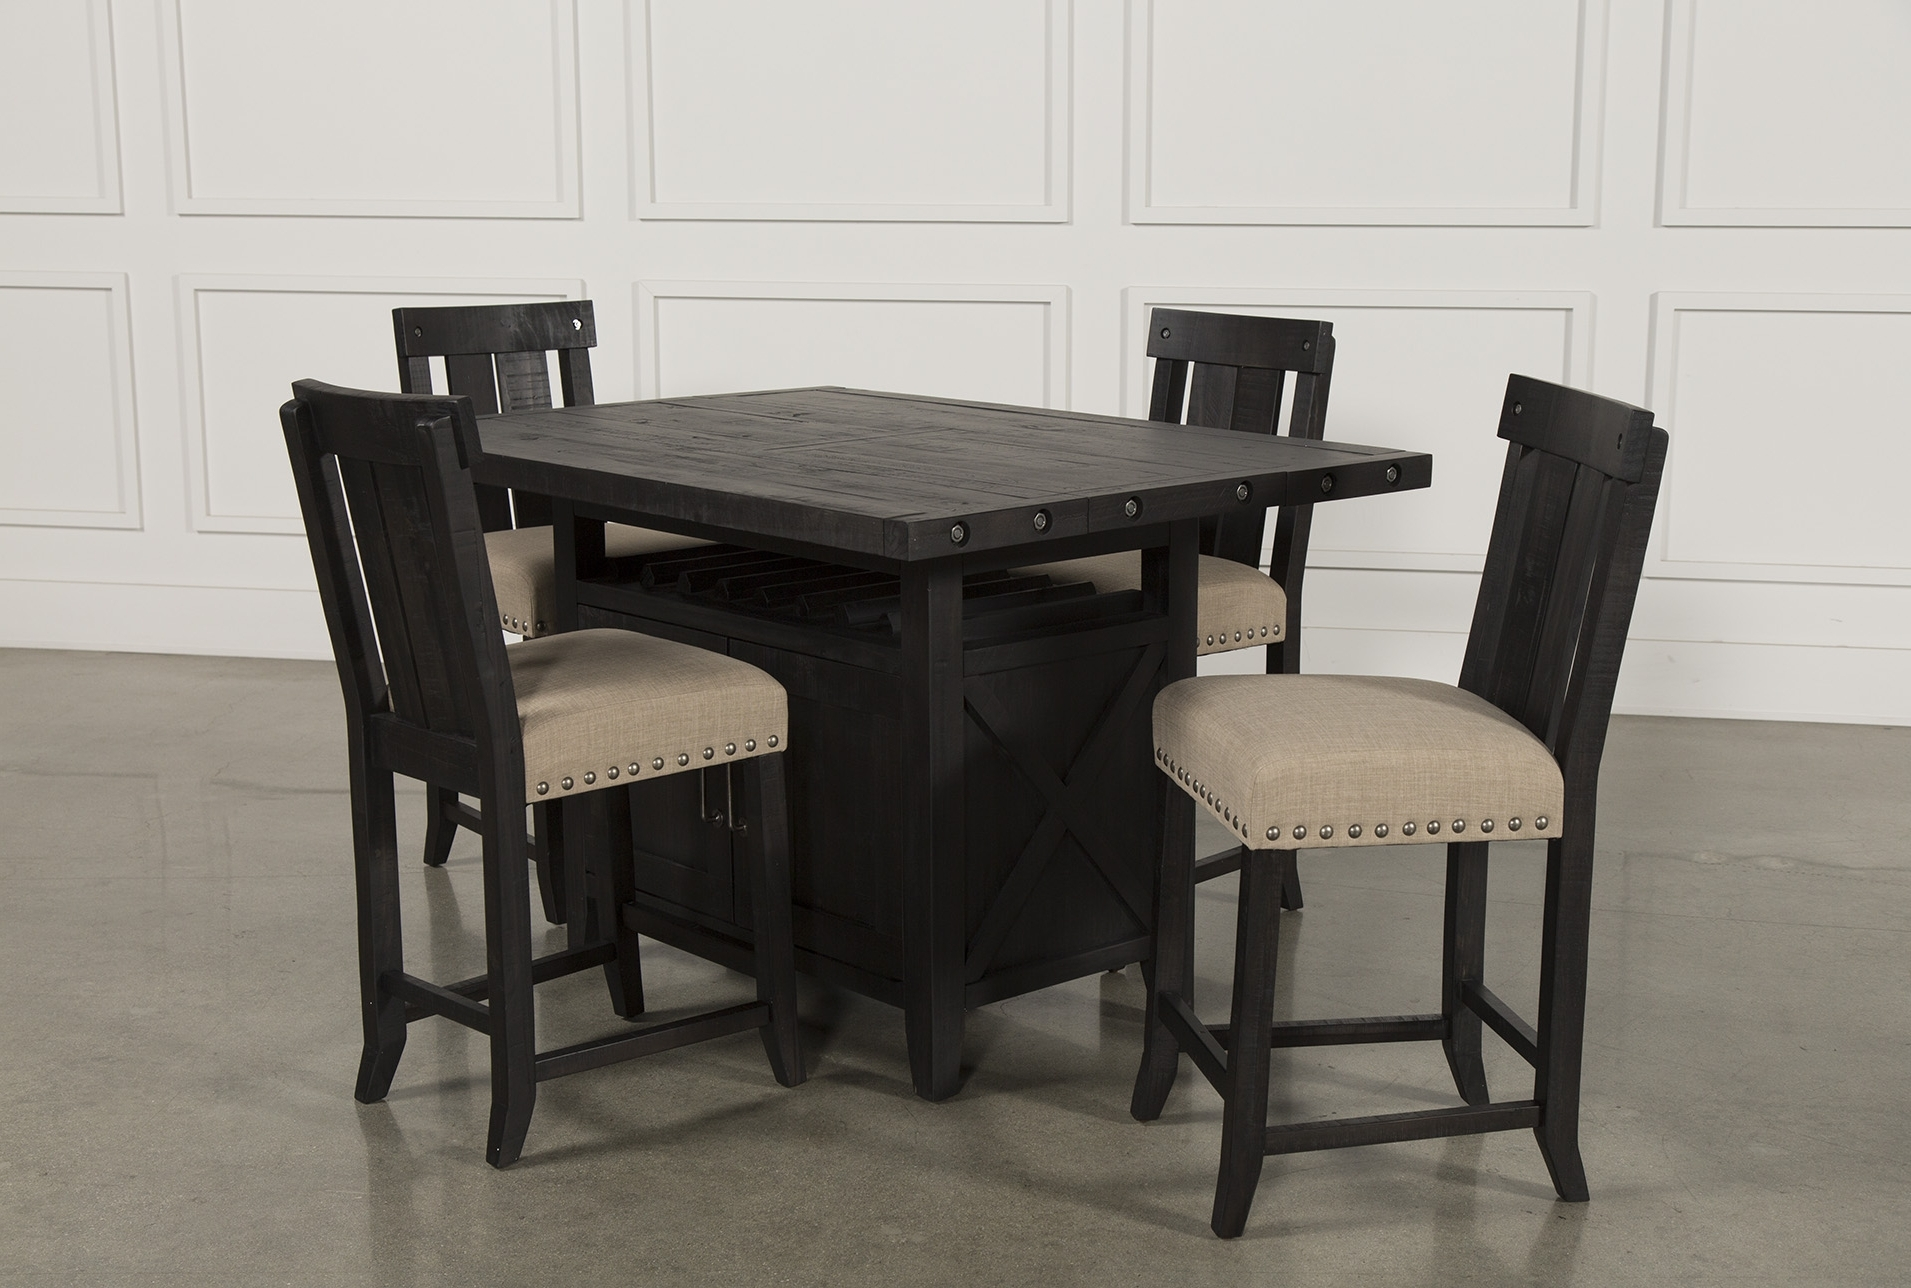 Global Furniture Bar Table Black Regarding Newest Jaxon 7 Piece Rectangle Dining Sets With Wood Chairs (Gallery 21 of 25)